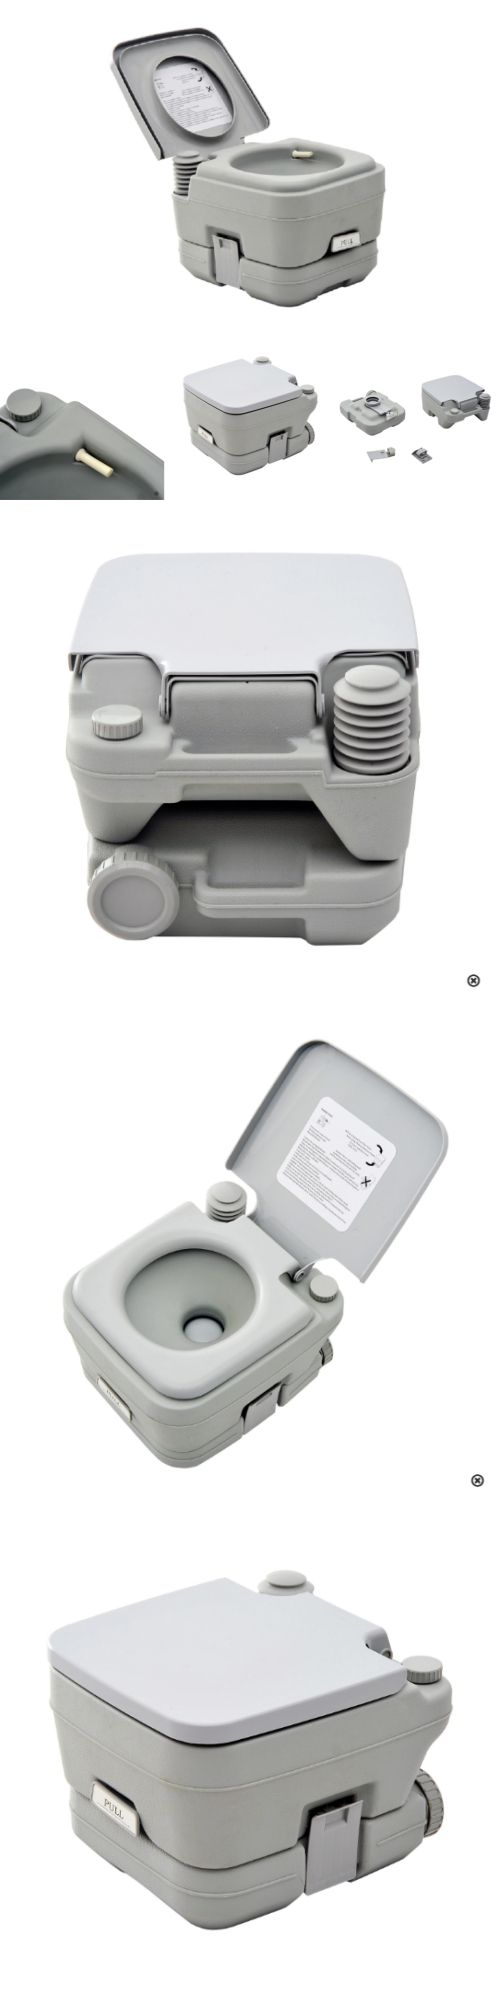 Portable Toilets And Accessories 181397 Camping Toilet Gray 28 Gallon Removable Waste Tank Travel